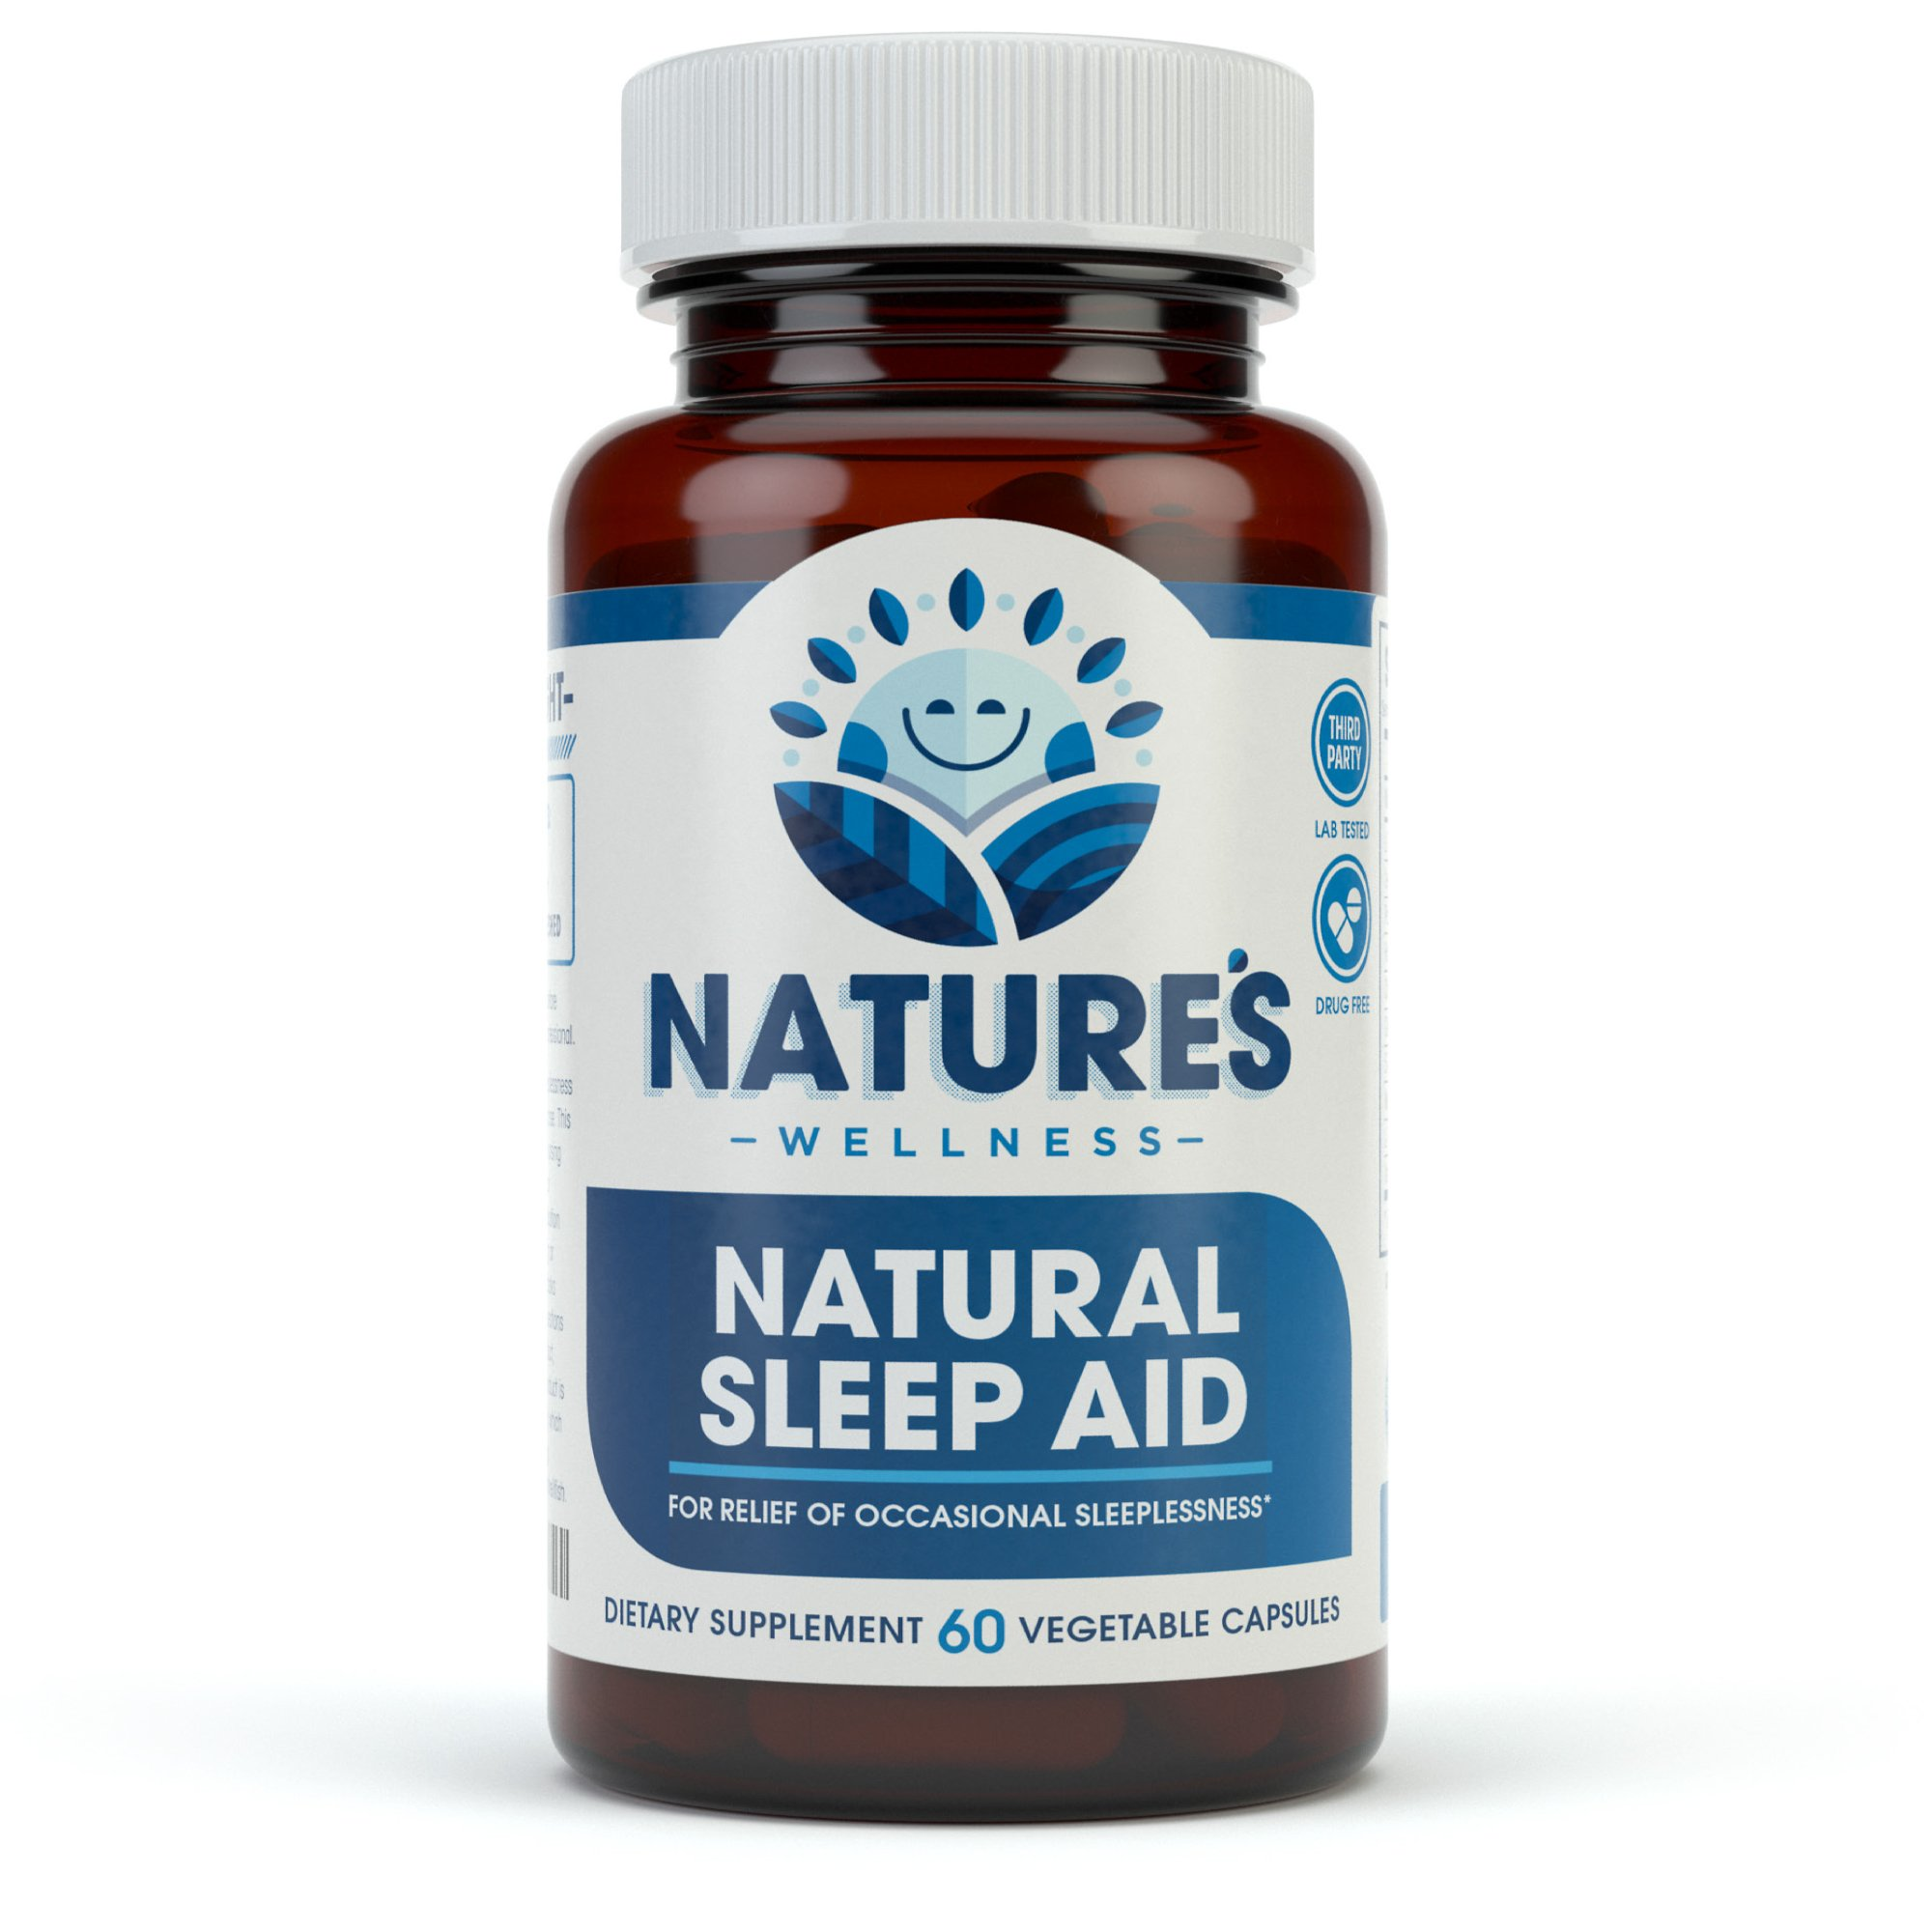 Natural Sleep Aid for Adults by Nature's Wellness, 60-Count | 100% Herbal Remedy Sleeping Pills, Safe & Effective Natural Insomnia Relief Supplement | Non-Habit Forming Blend Allows Deep Sleep & Rest by Natures Wellness (Image #1)